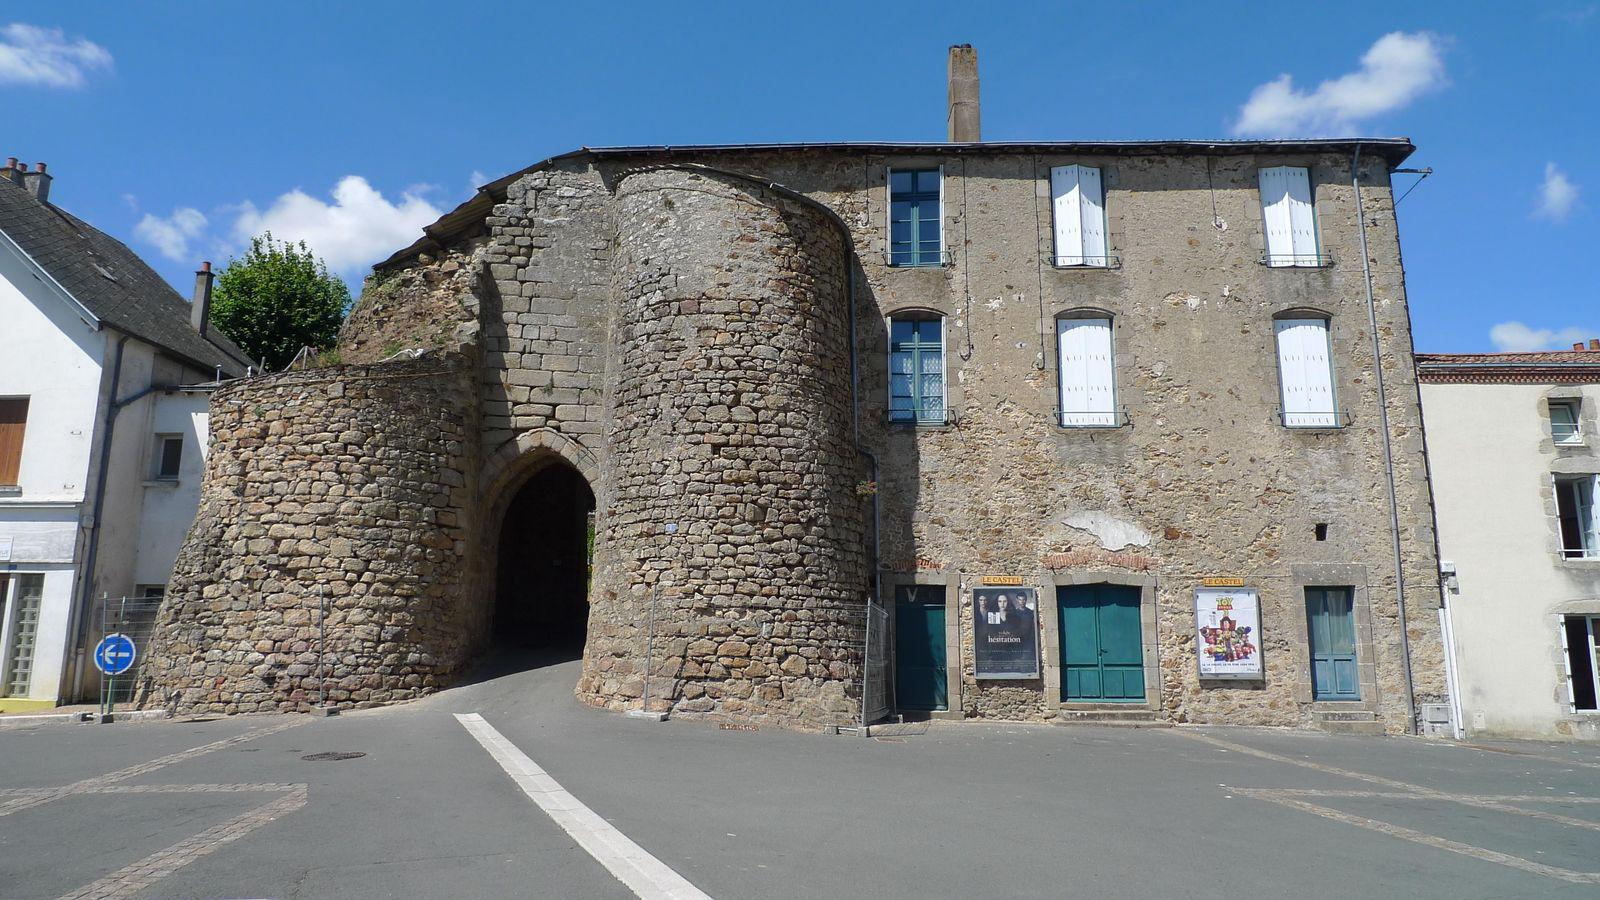 Office de tourisme de maul on maul on licharre 64130 - Office du tourisme pyrenees atlantiques ...